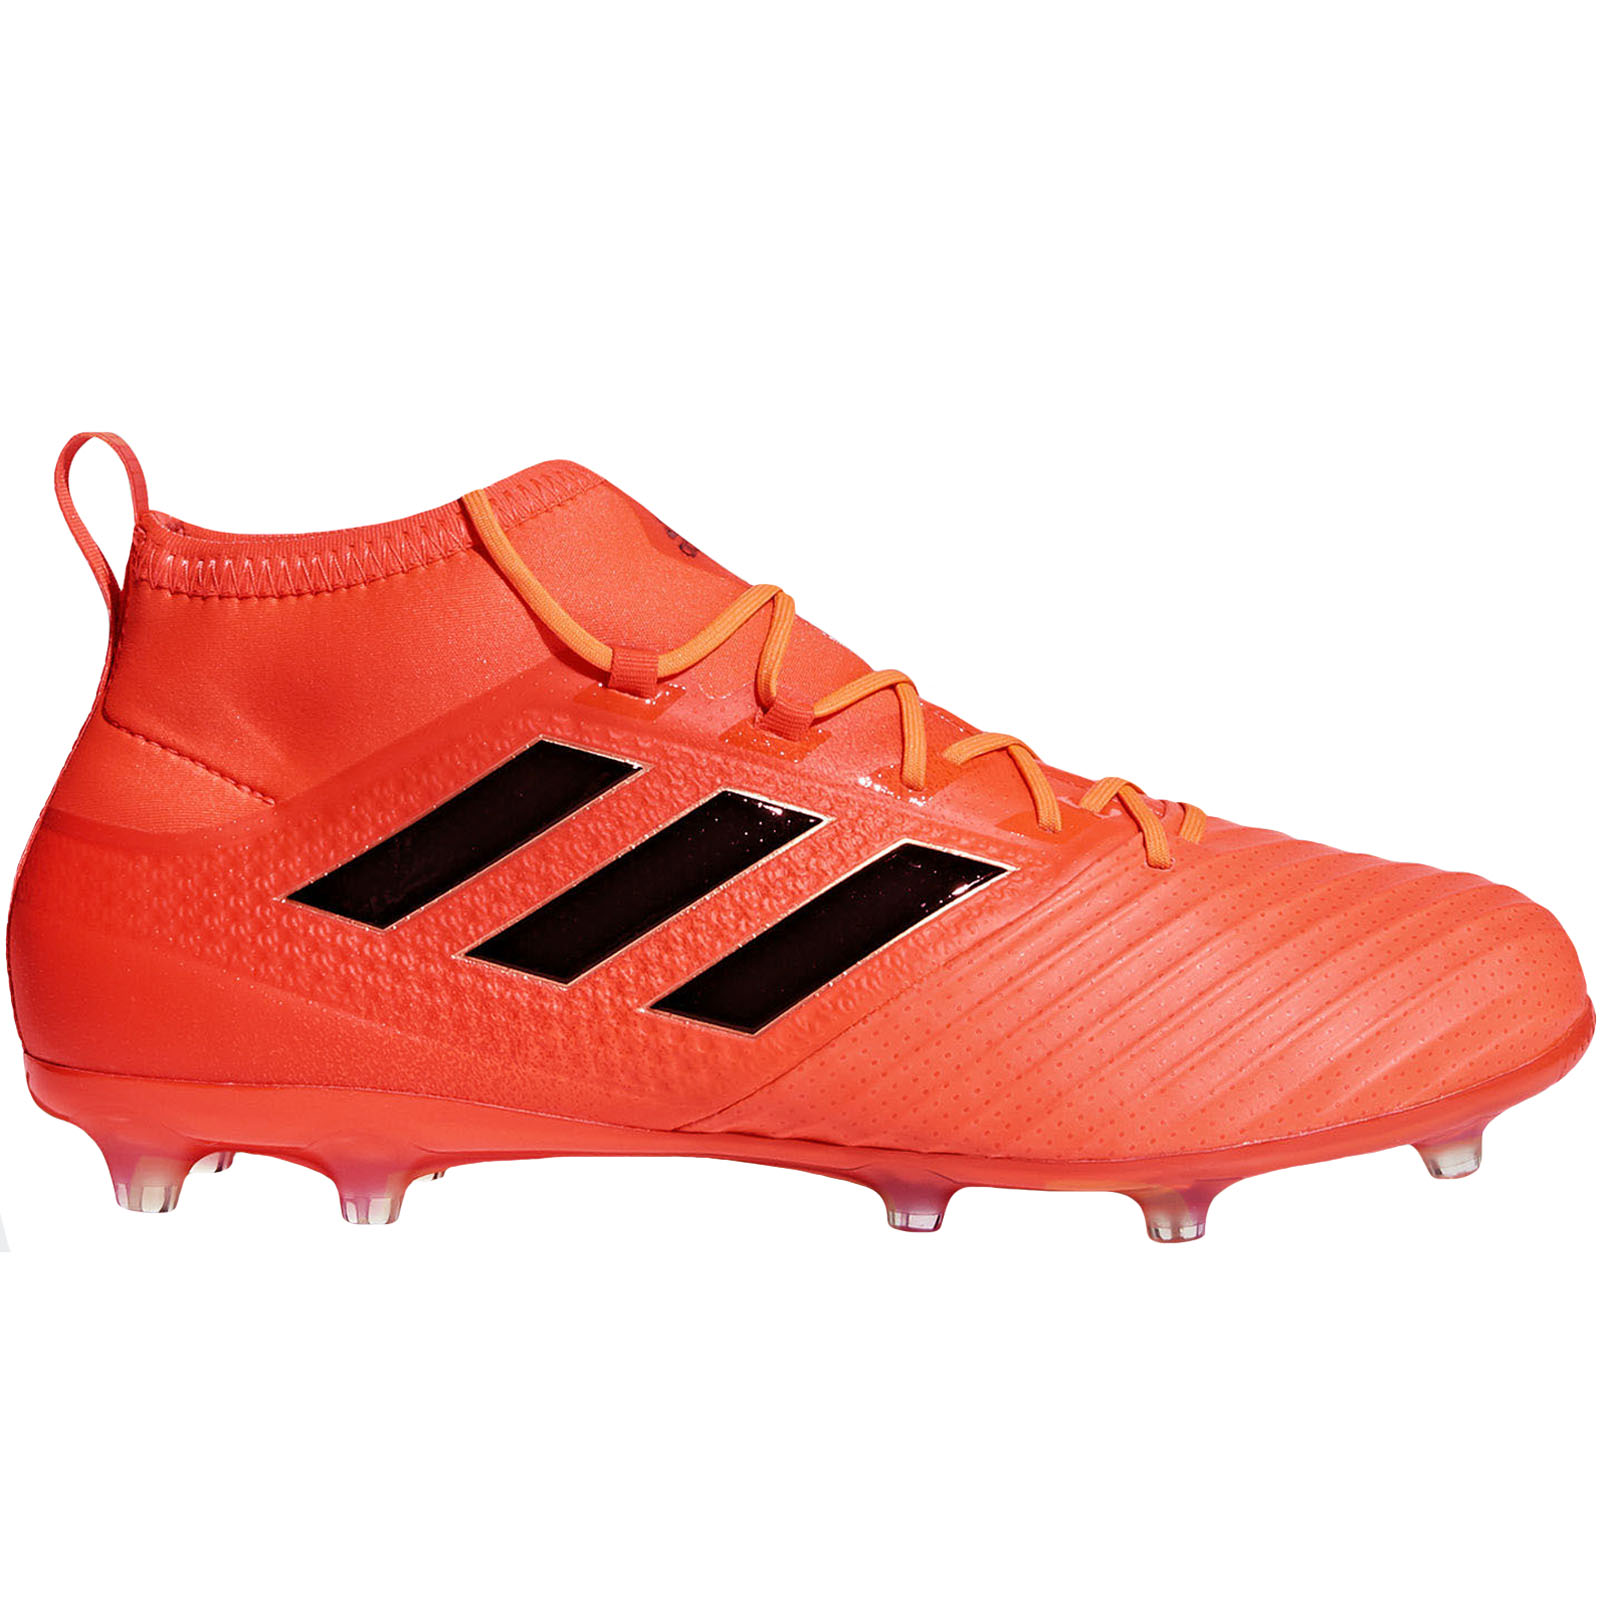 11e0a1bbcea2 Details about adidas Performance Mens ACE 17.2 Firm Ground Soccer Training  Boots - Orange